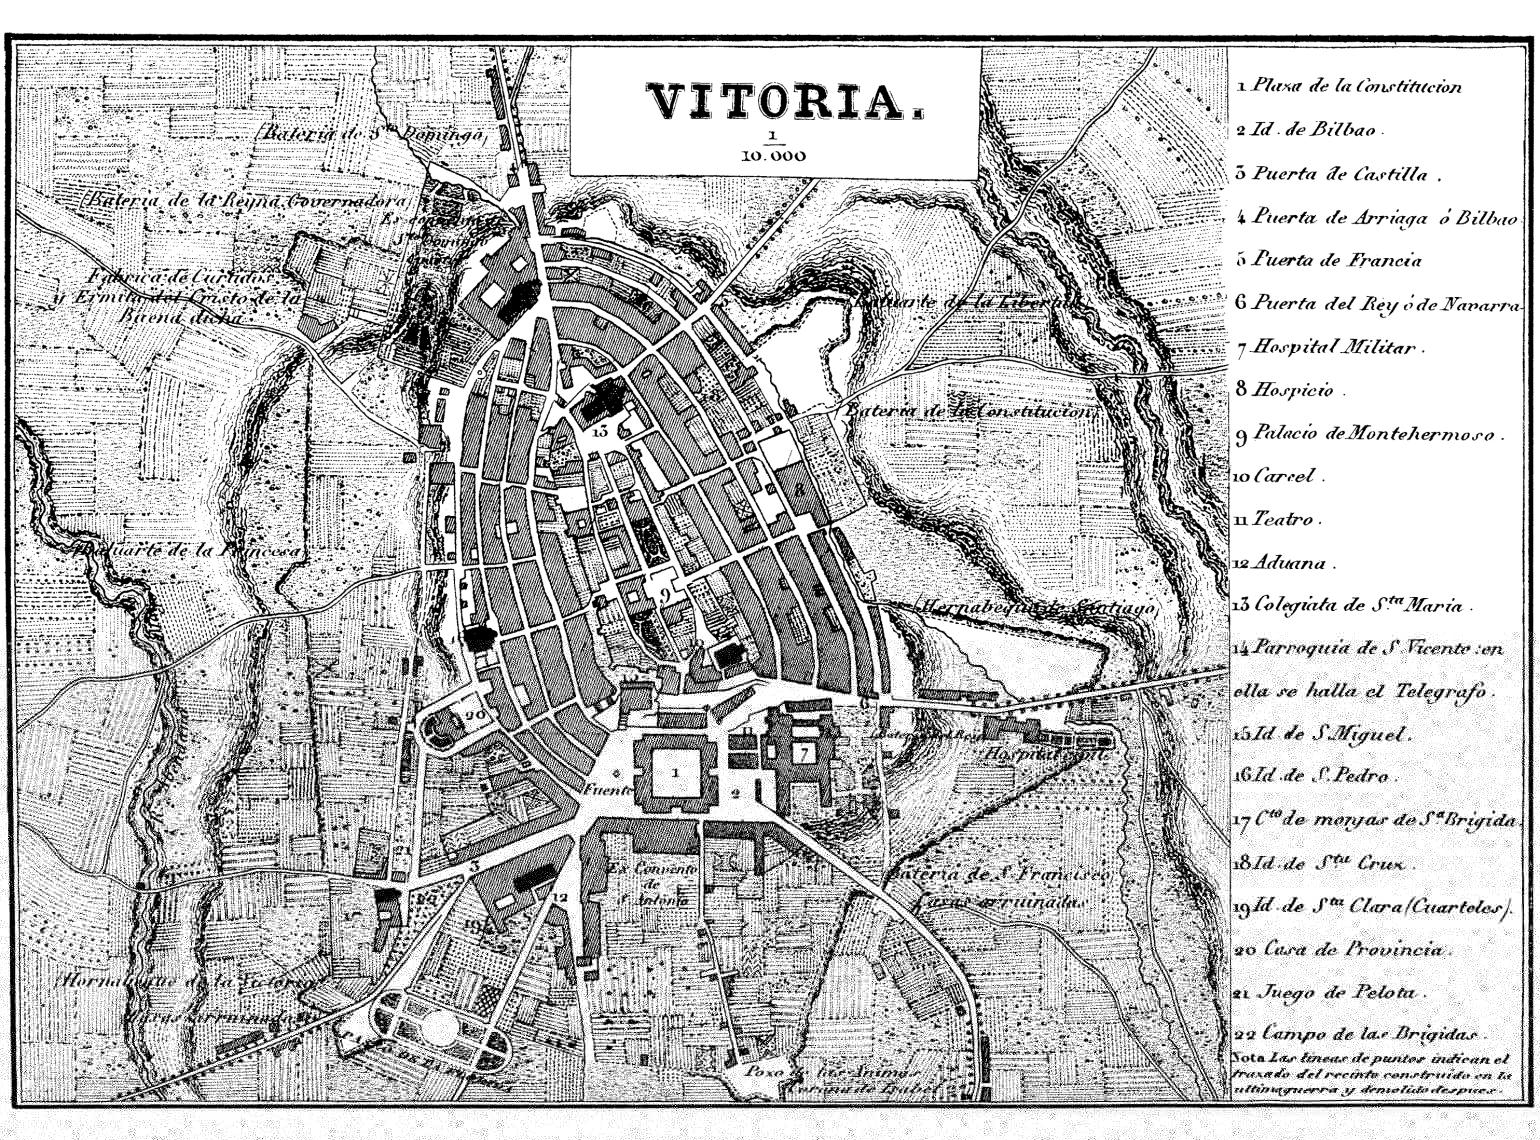 Vitoria-Gasteiz map in 1836